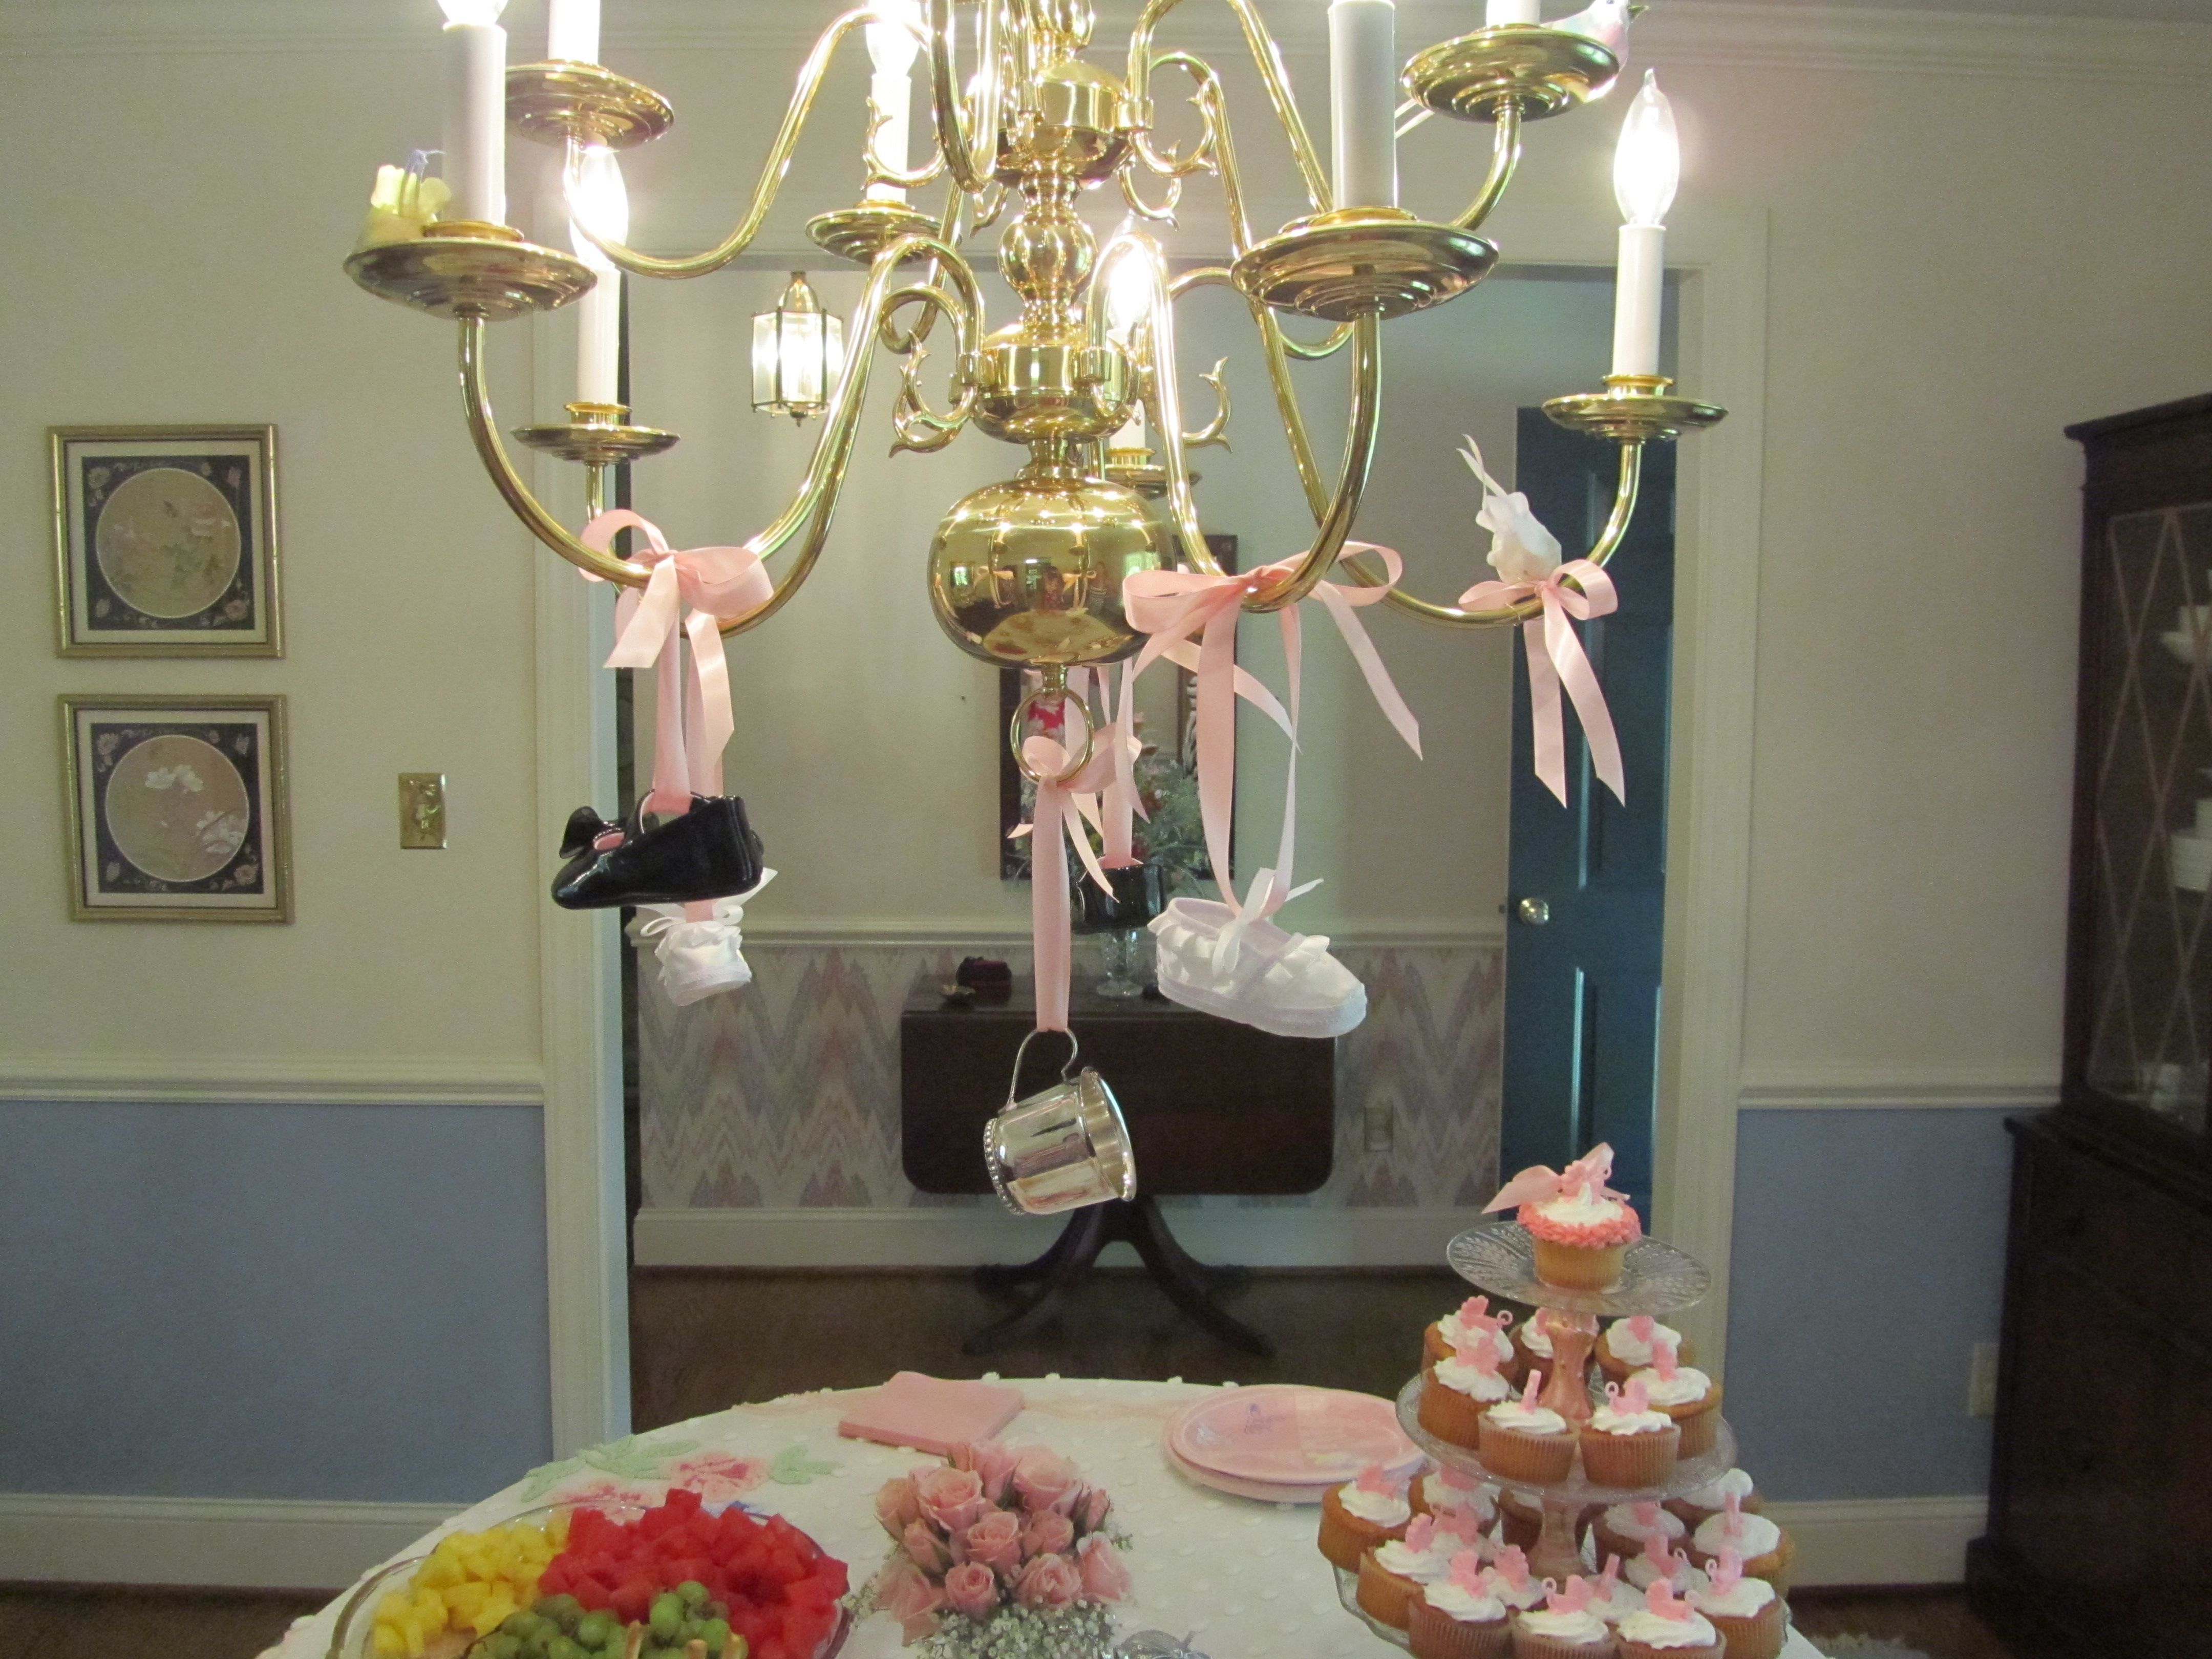 Baby shoes and silver baby cup decorating chandelier